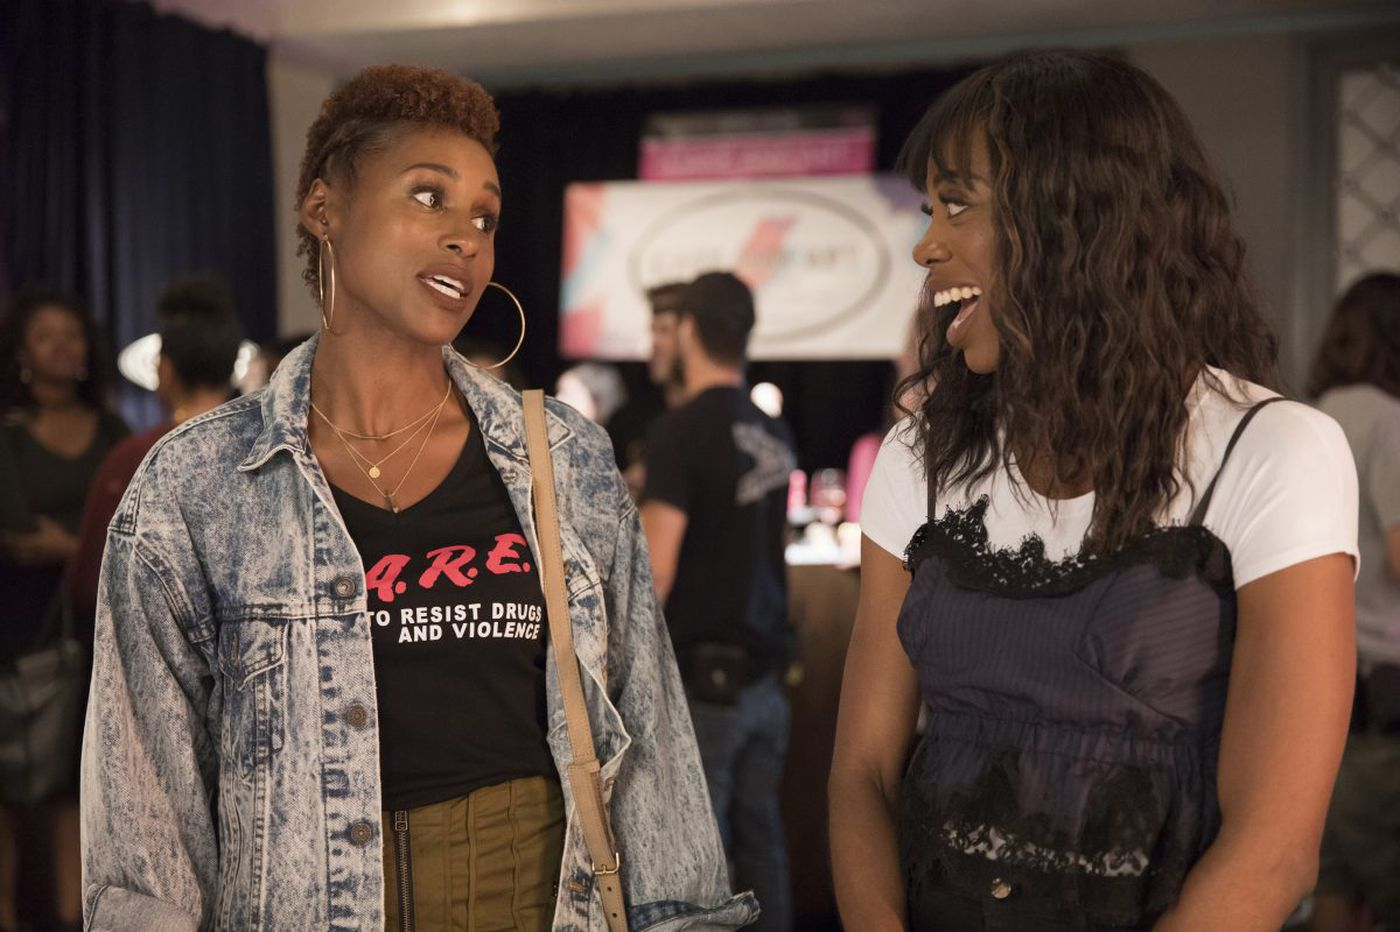 HBO's 'Insecure' hits home because it hilariously taps into the insecurity that lives in all of us